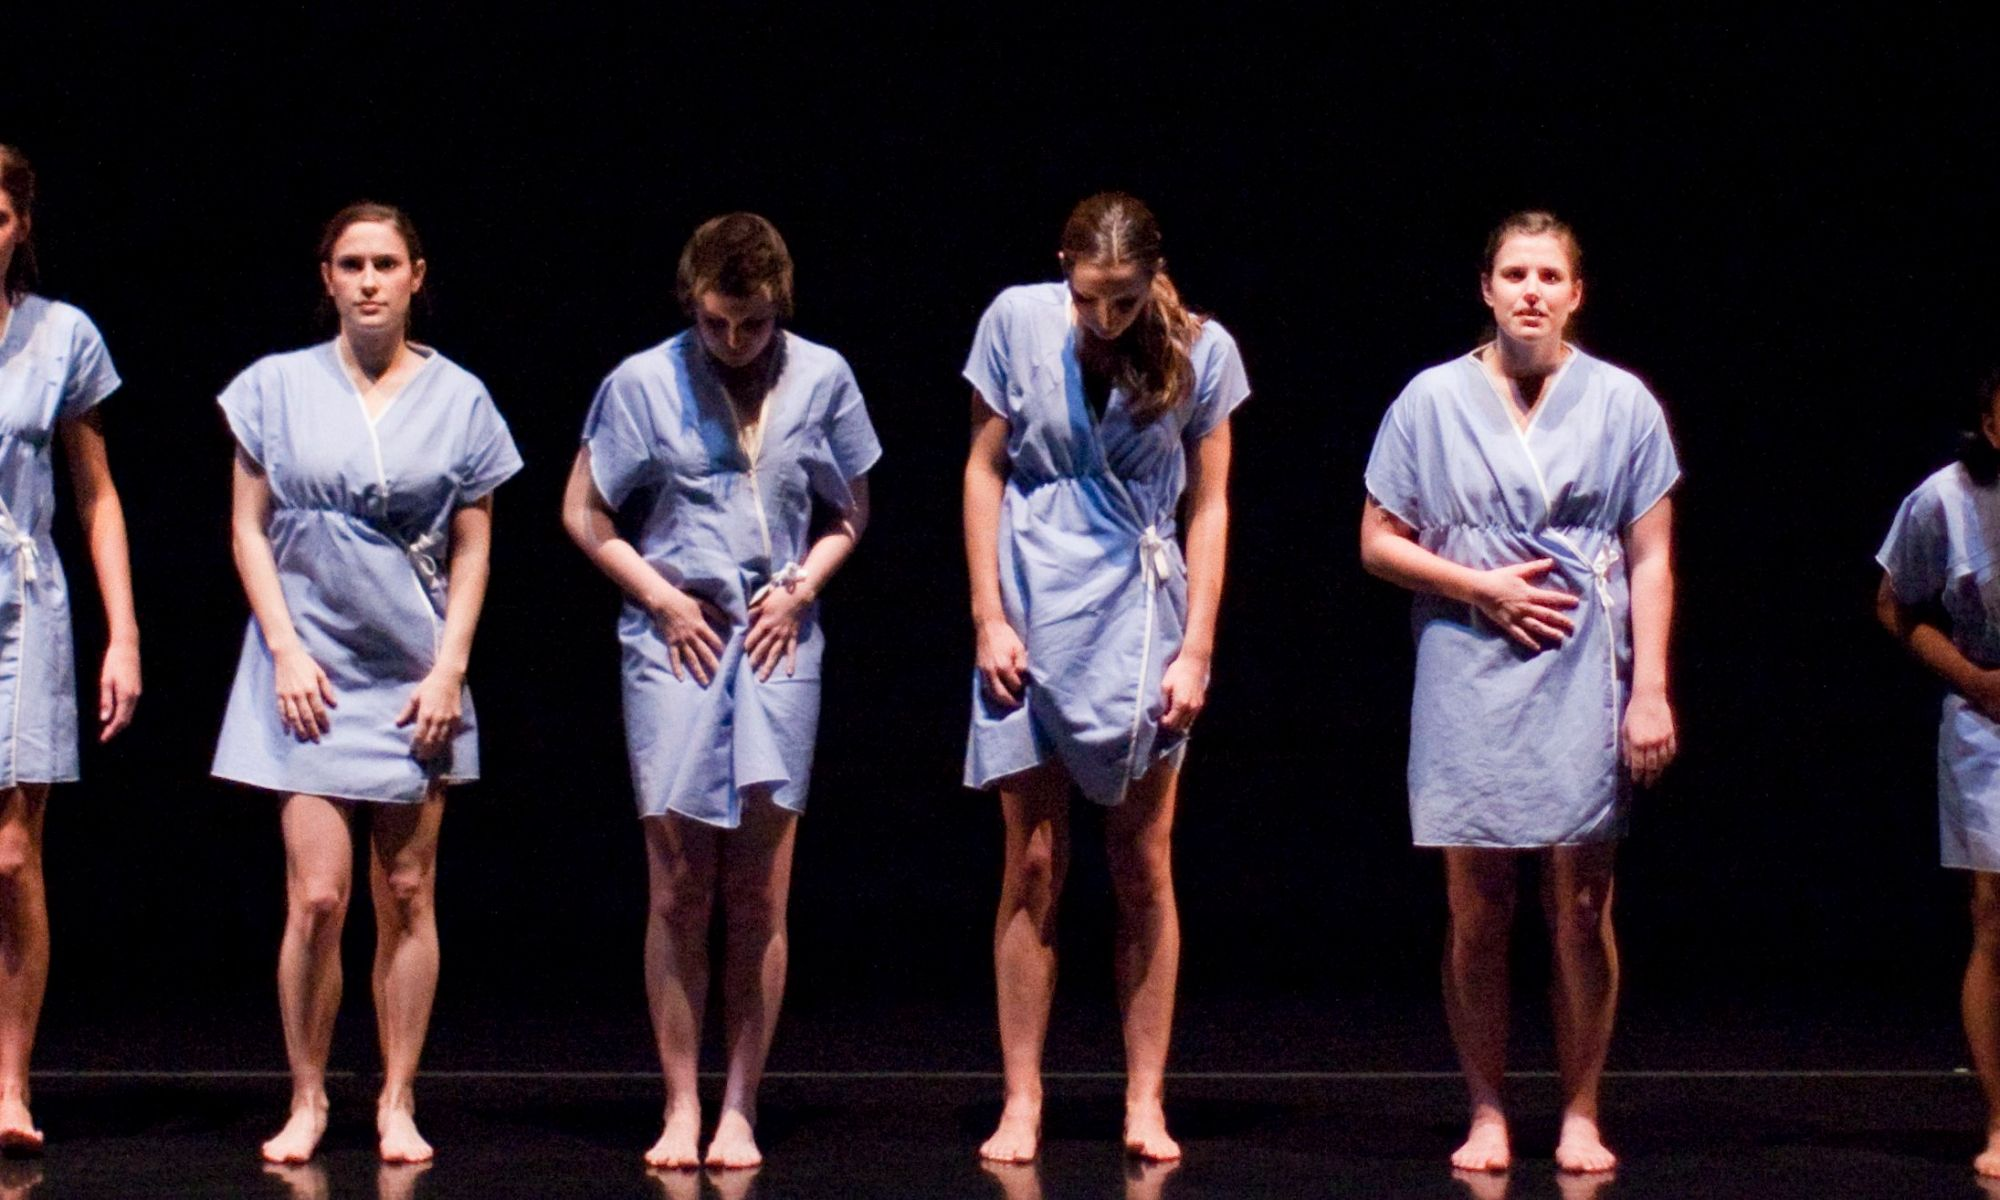 6 women standing, wearing blue hospital gowns, cringing and holding their bellies.